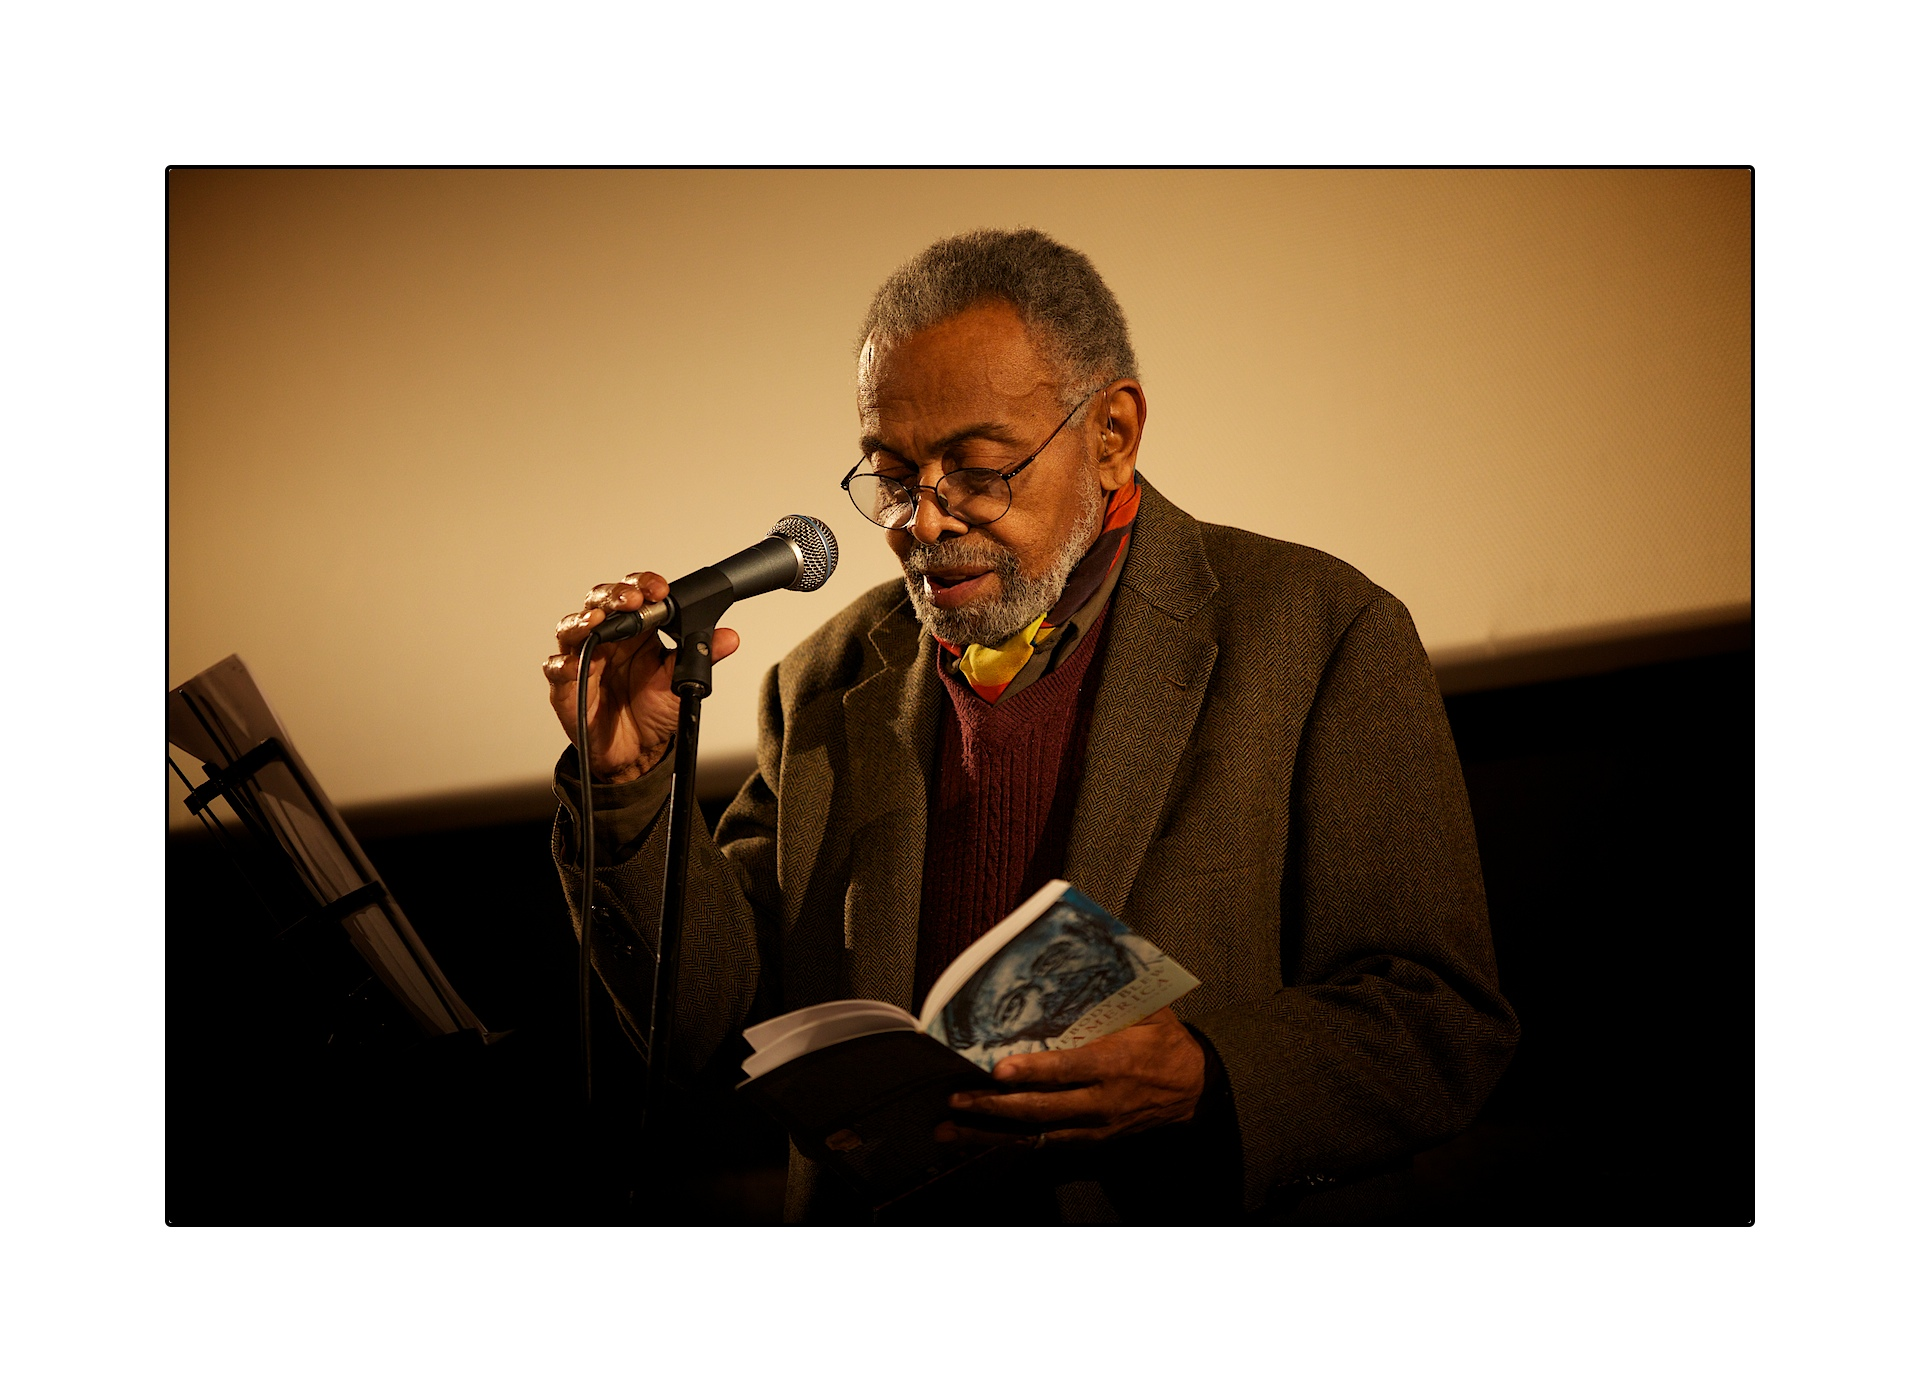 Do you remember Amiri Baraka?